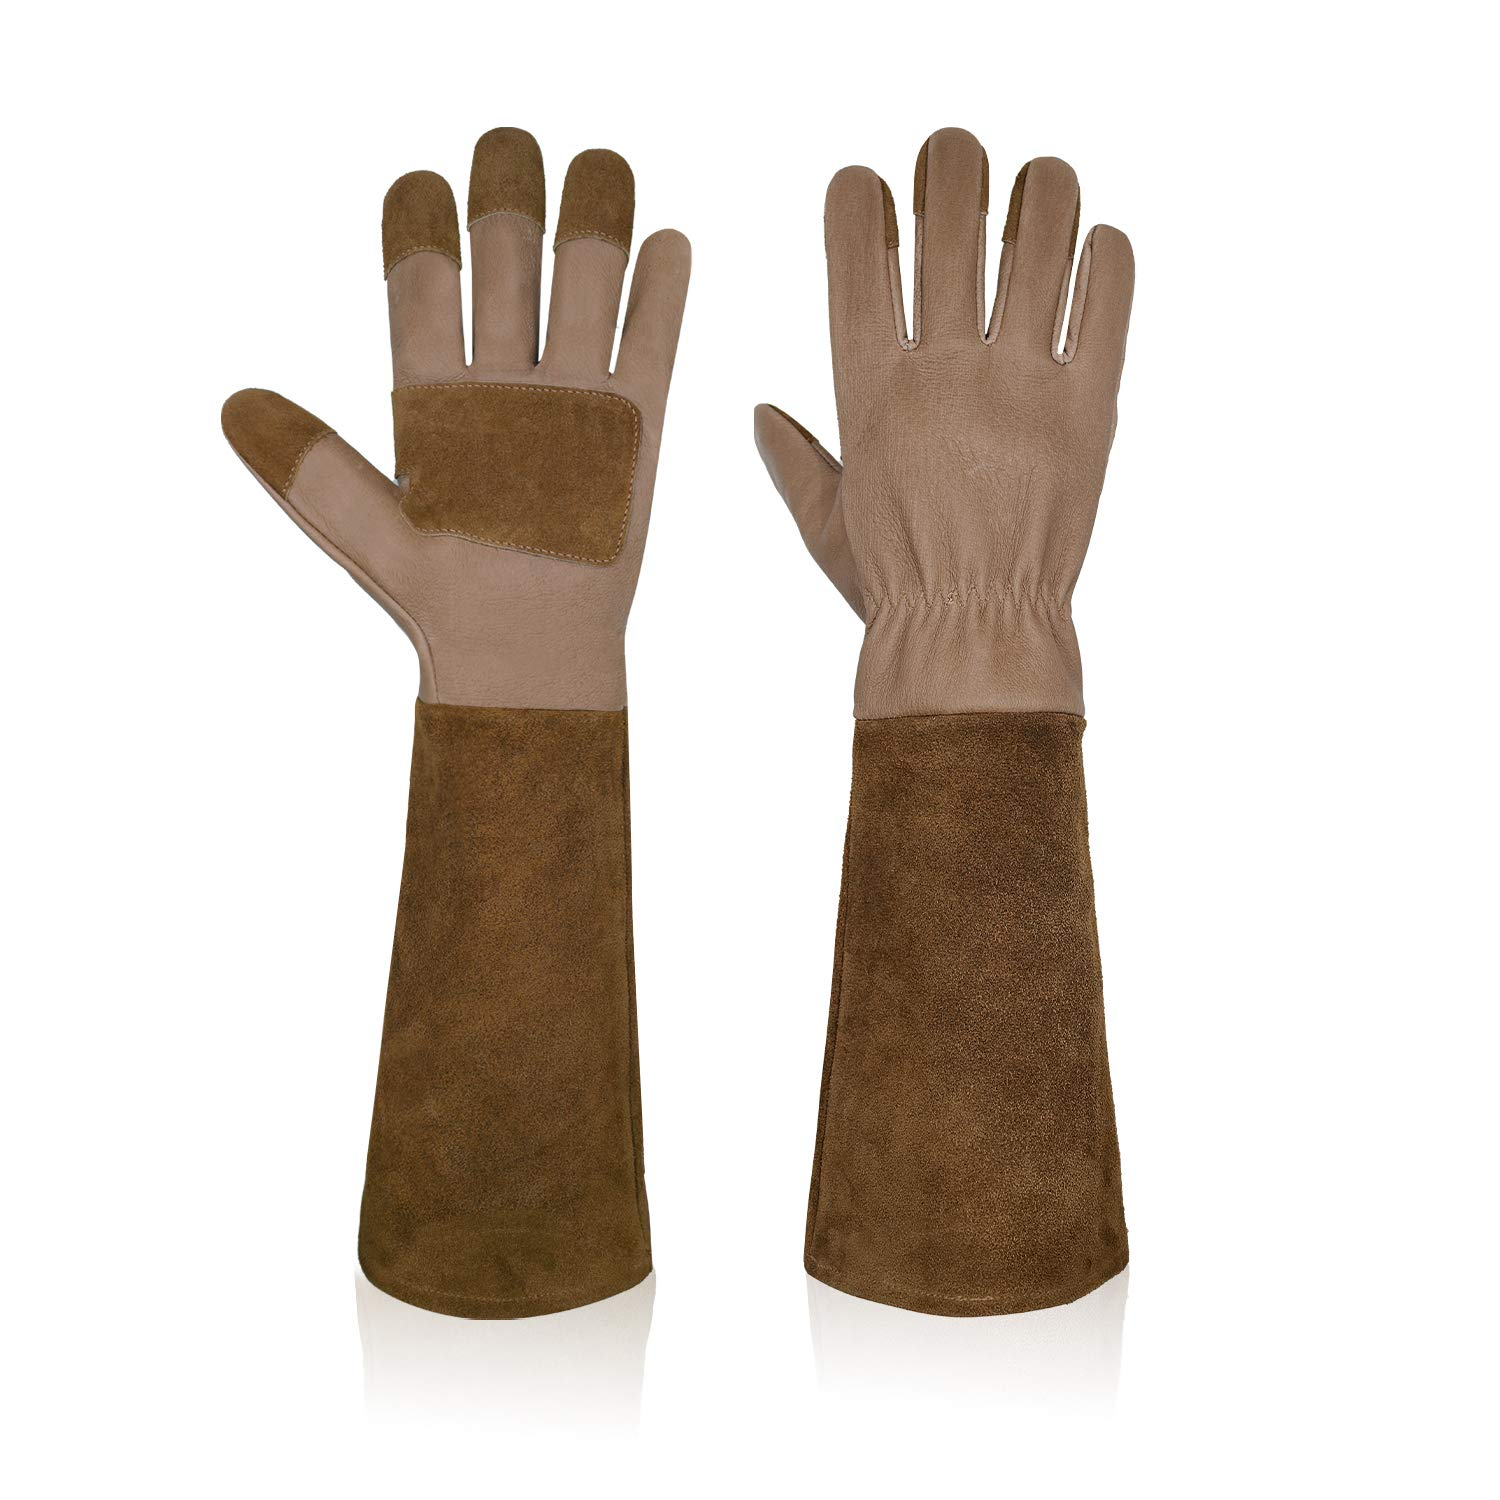 Garden Gloves Women&Men,Rose Pruning Gloves Pigskin Leather Puncture Resistance Long Sleeve Rose Gardening Gloves,Thorn Proof Garden Work Gauntlet with Forearm Protection(S, Brown)